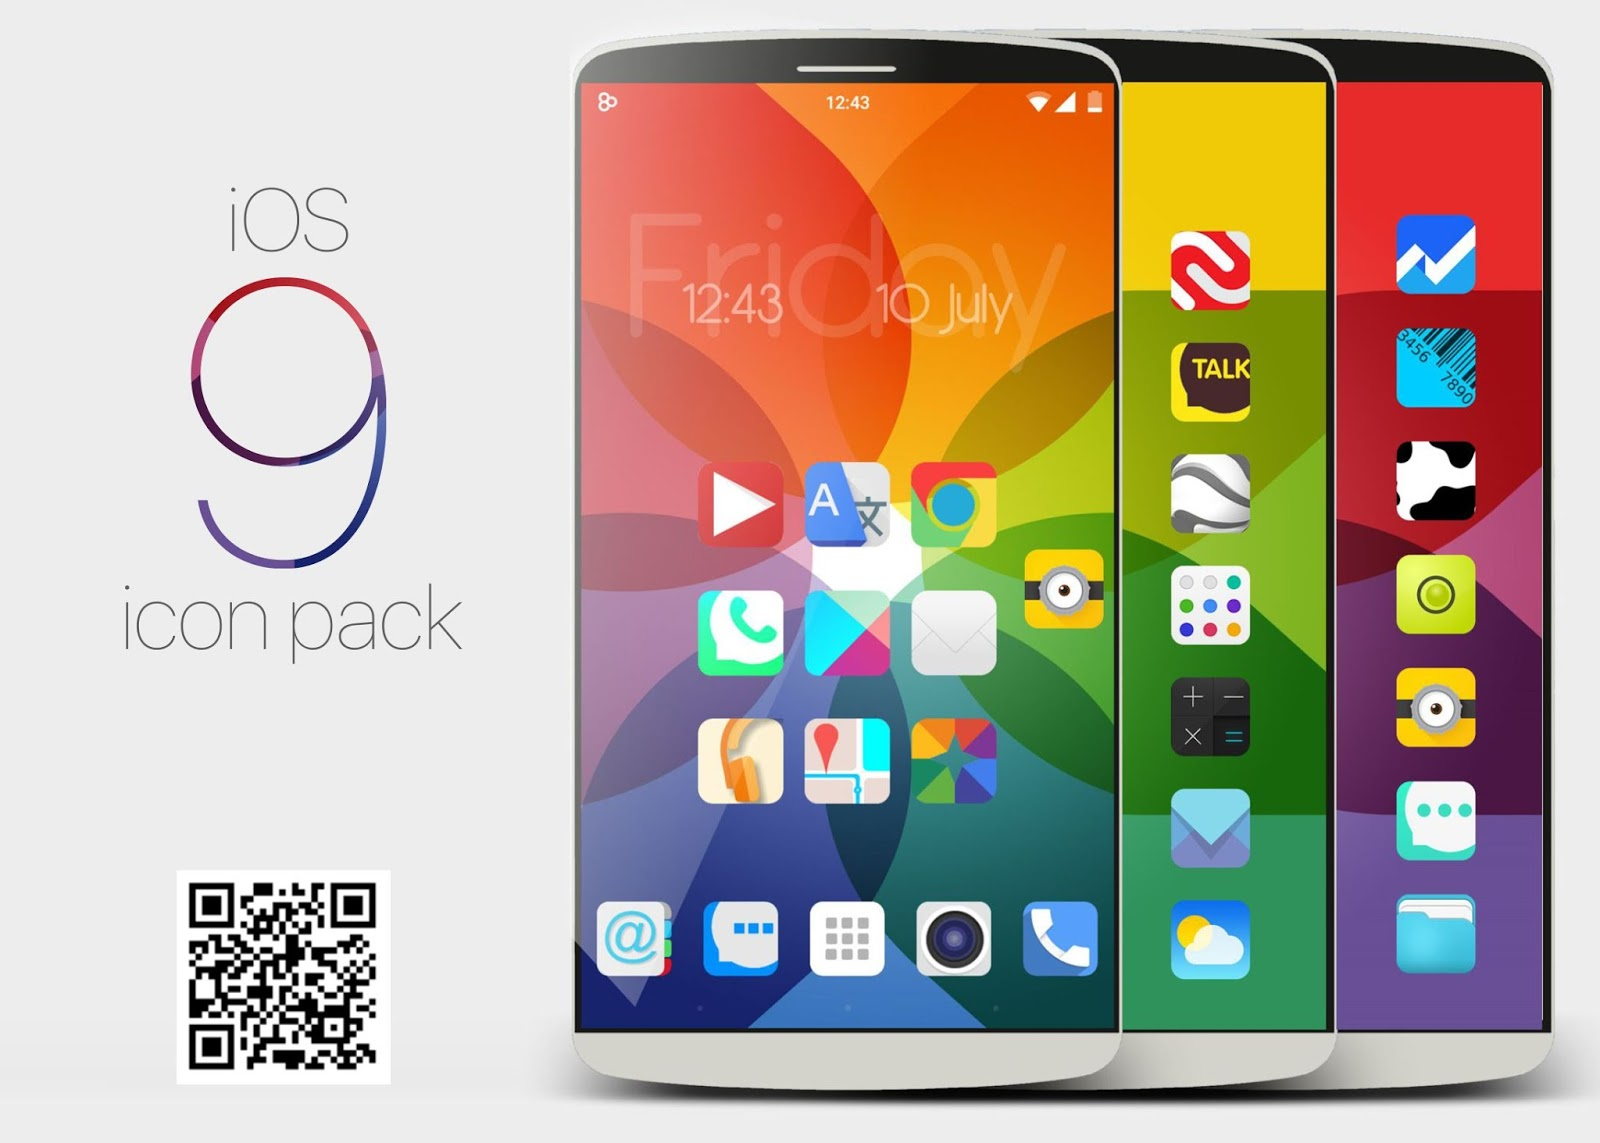 icon pack Android: Iphone ios9 Concept Theme to Android icon pack